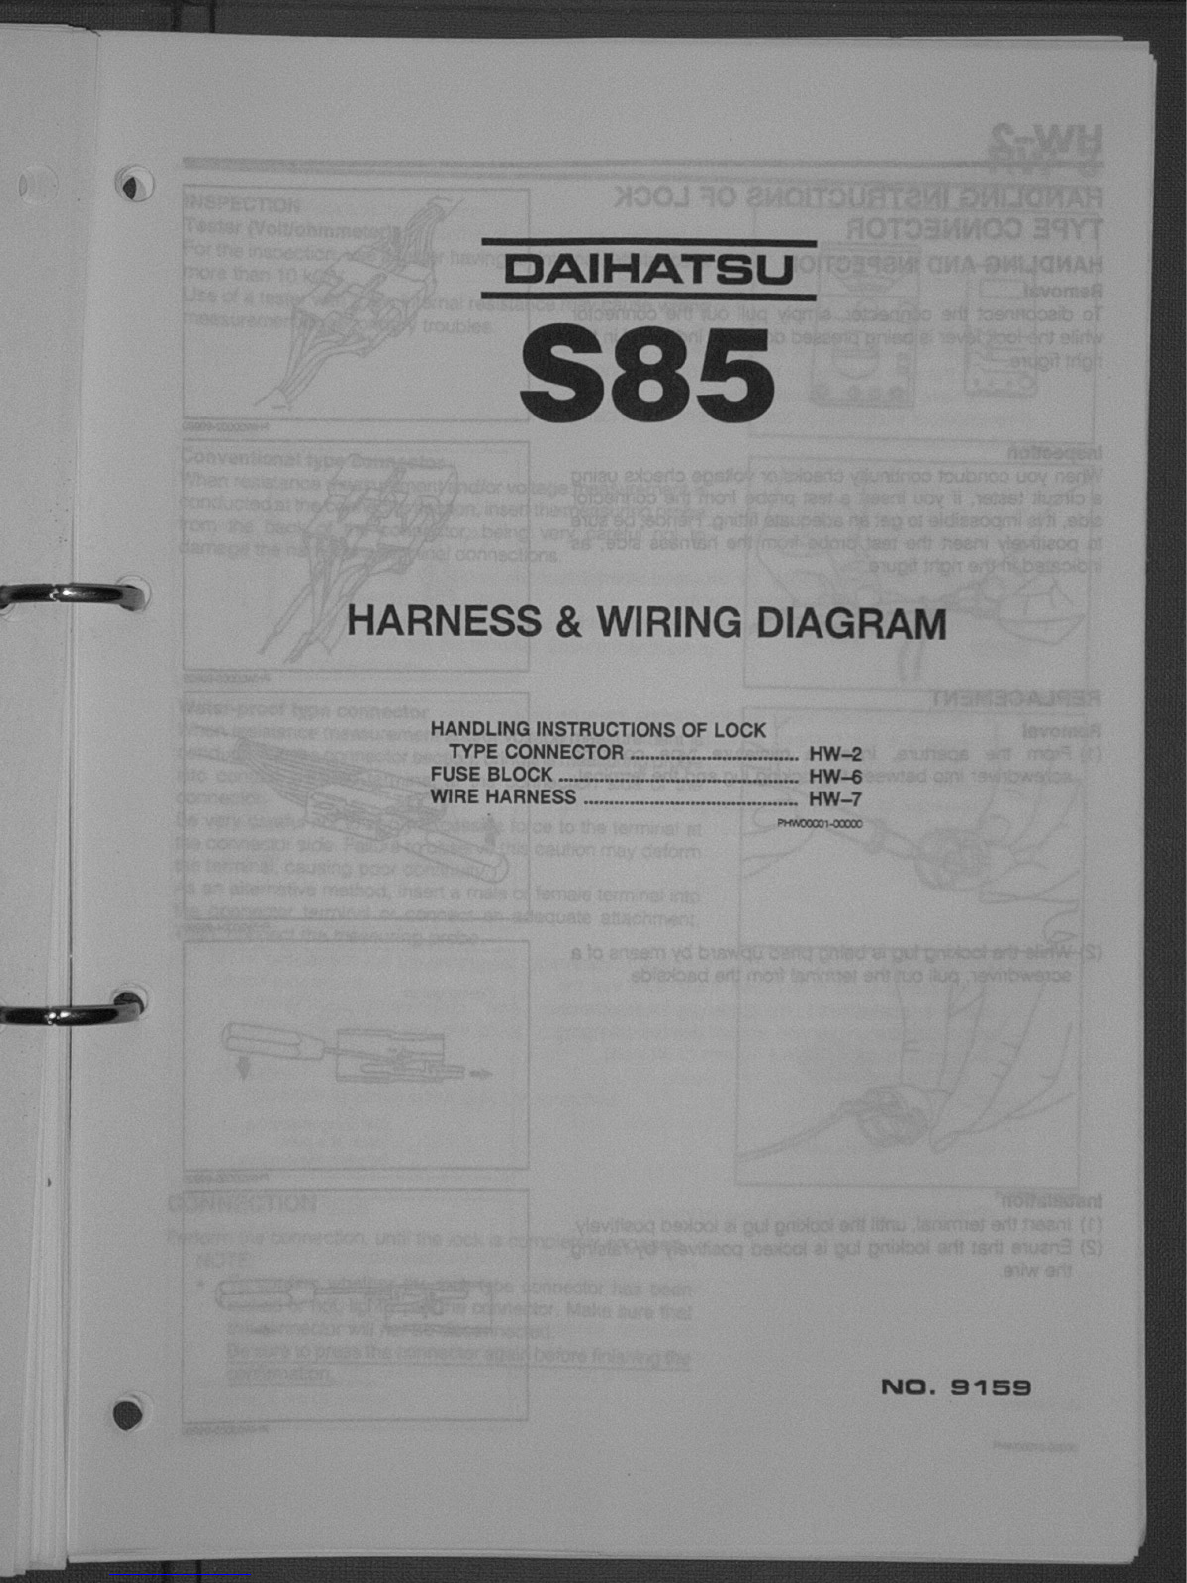 daihatsu hijet 1989 1994 s85 wiring diagram pdf. Black Bedroom Furniture Sets. Home Design Ideas